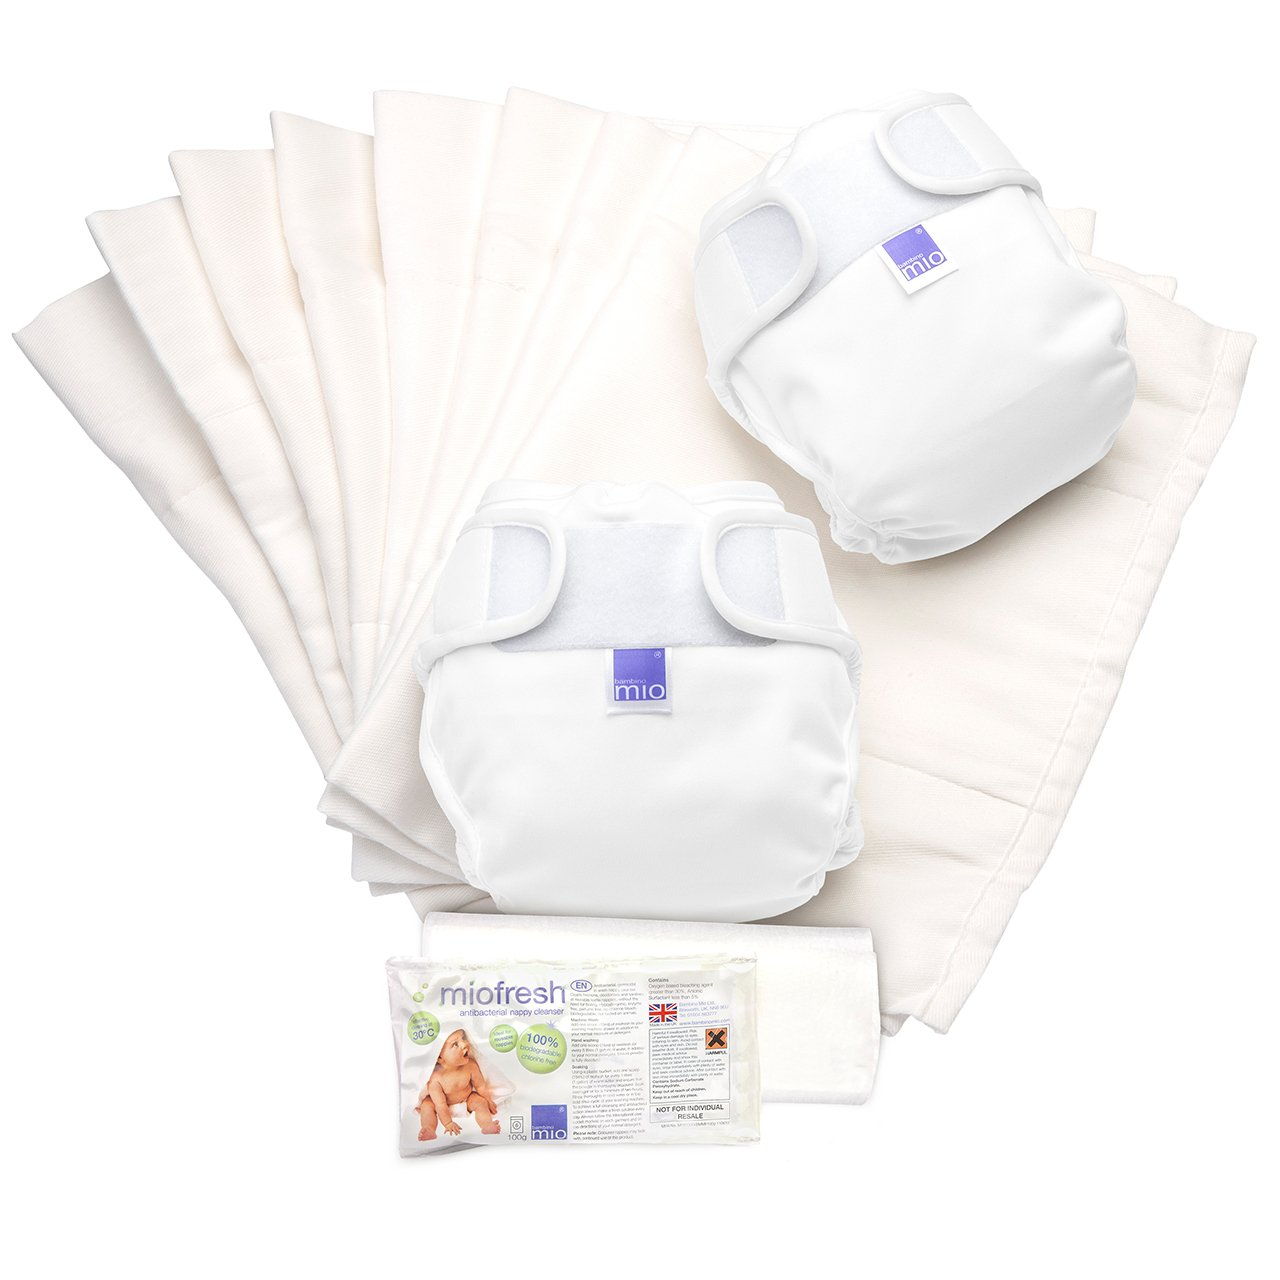 Bambino Mio, Miosoft Reusable Nappy Set, White, Size 2 (9kg+) NS2 A